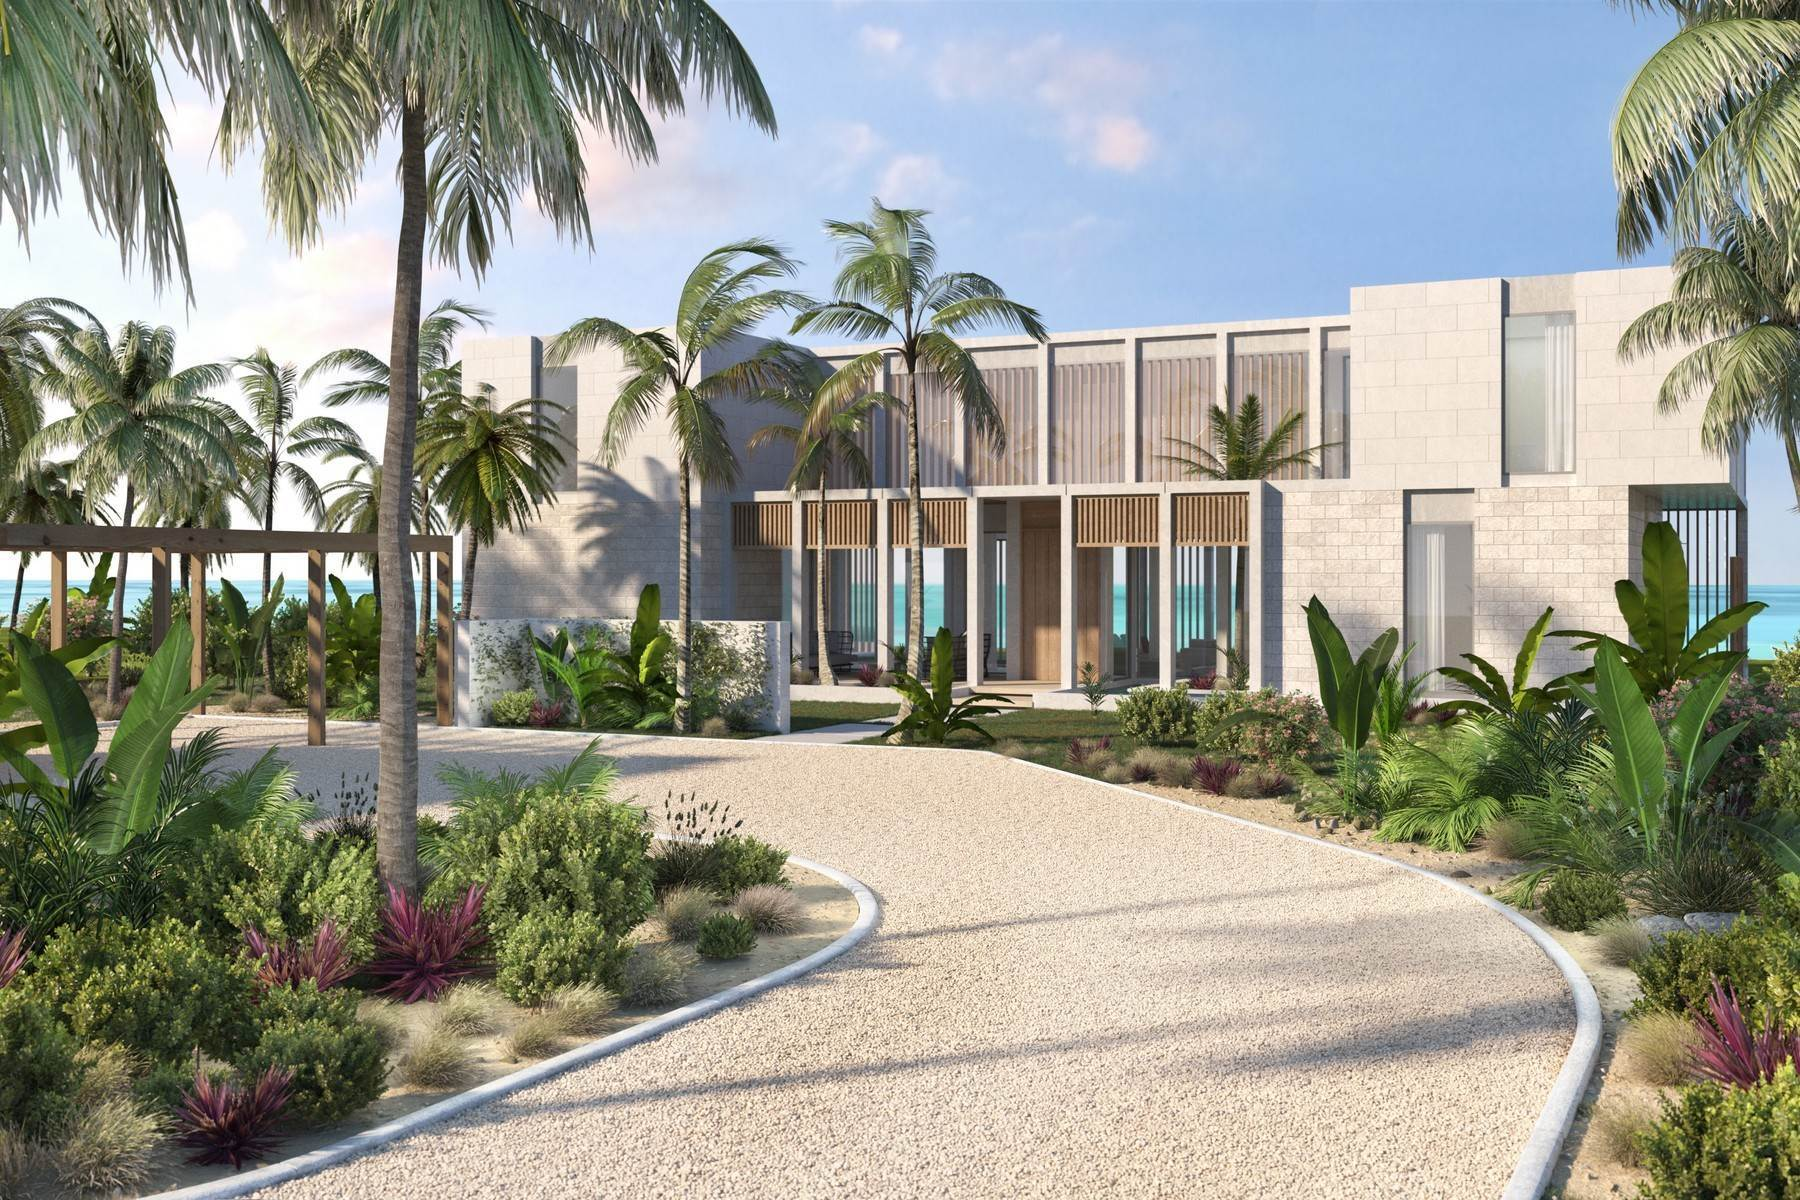 8. Single Family Homes for Sale at SOUTH BANK - THE OCEAN ESTATE I - BANKS VILLA 7 South Bank, Long Bay, Providenciales Turks And Caicos Islands